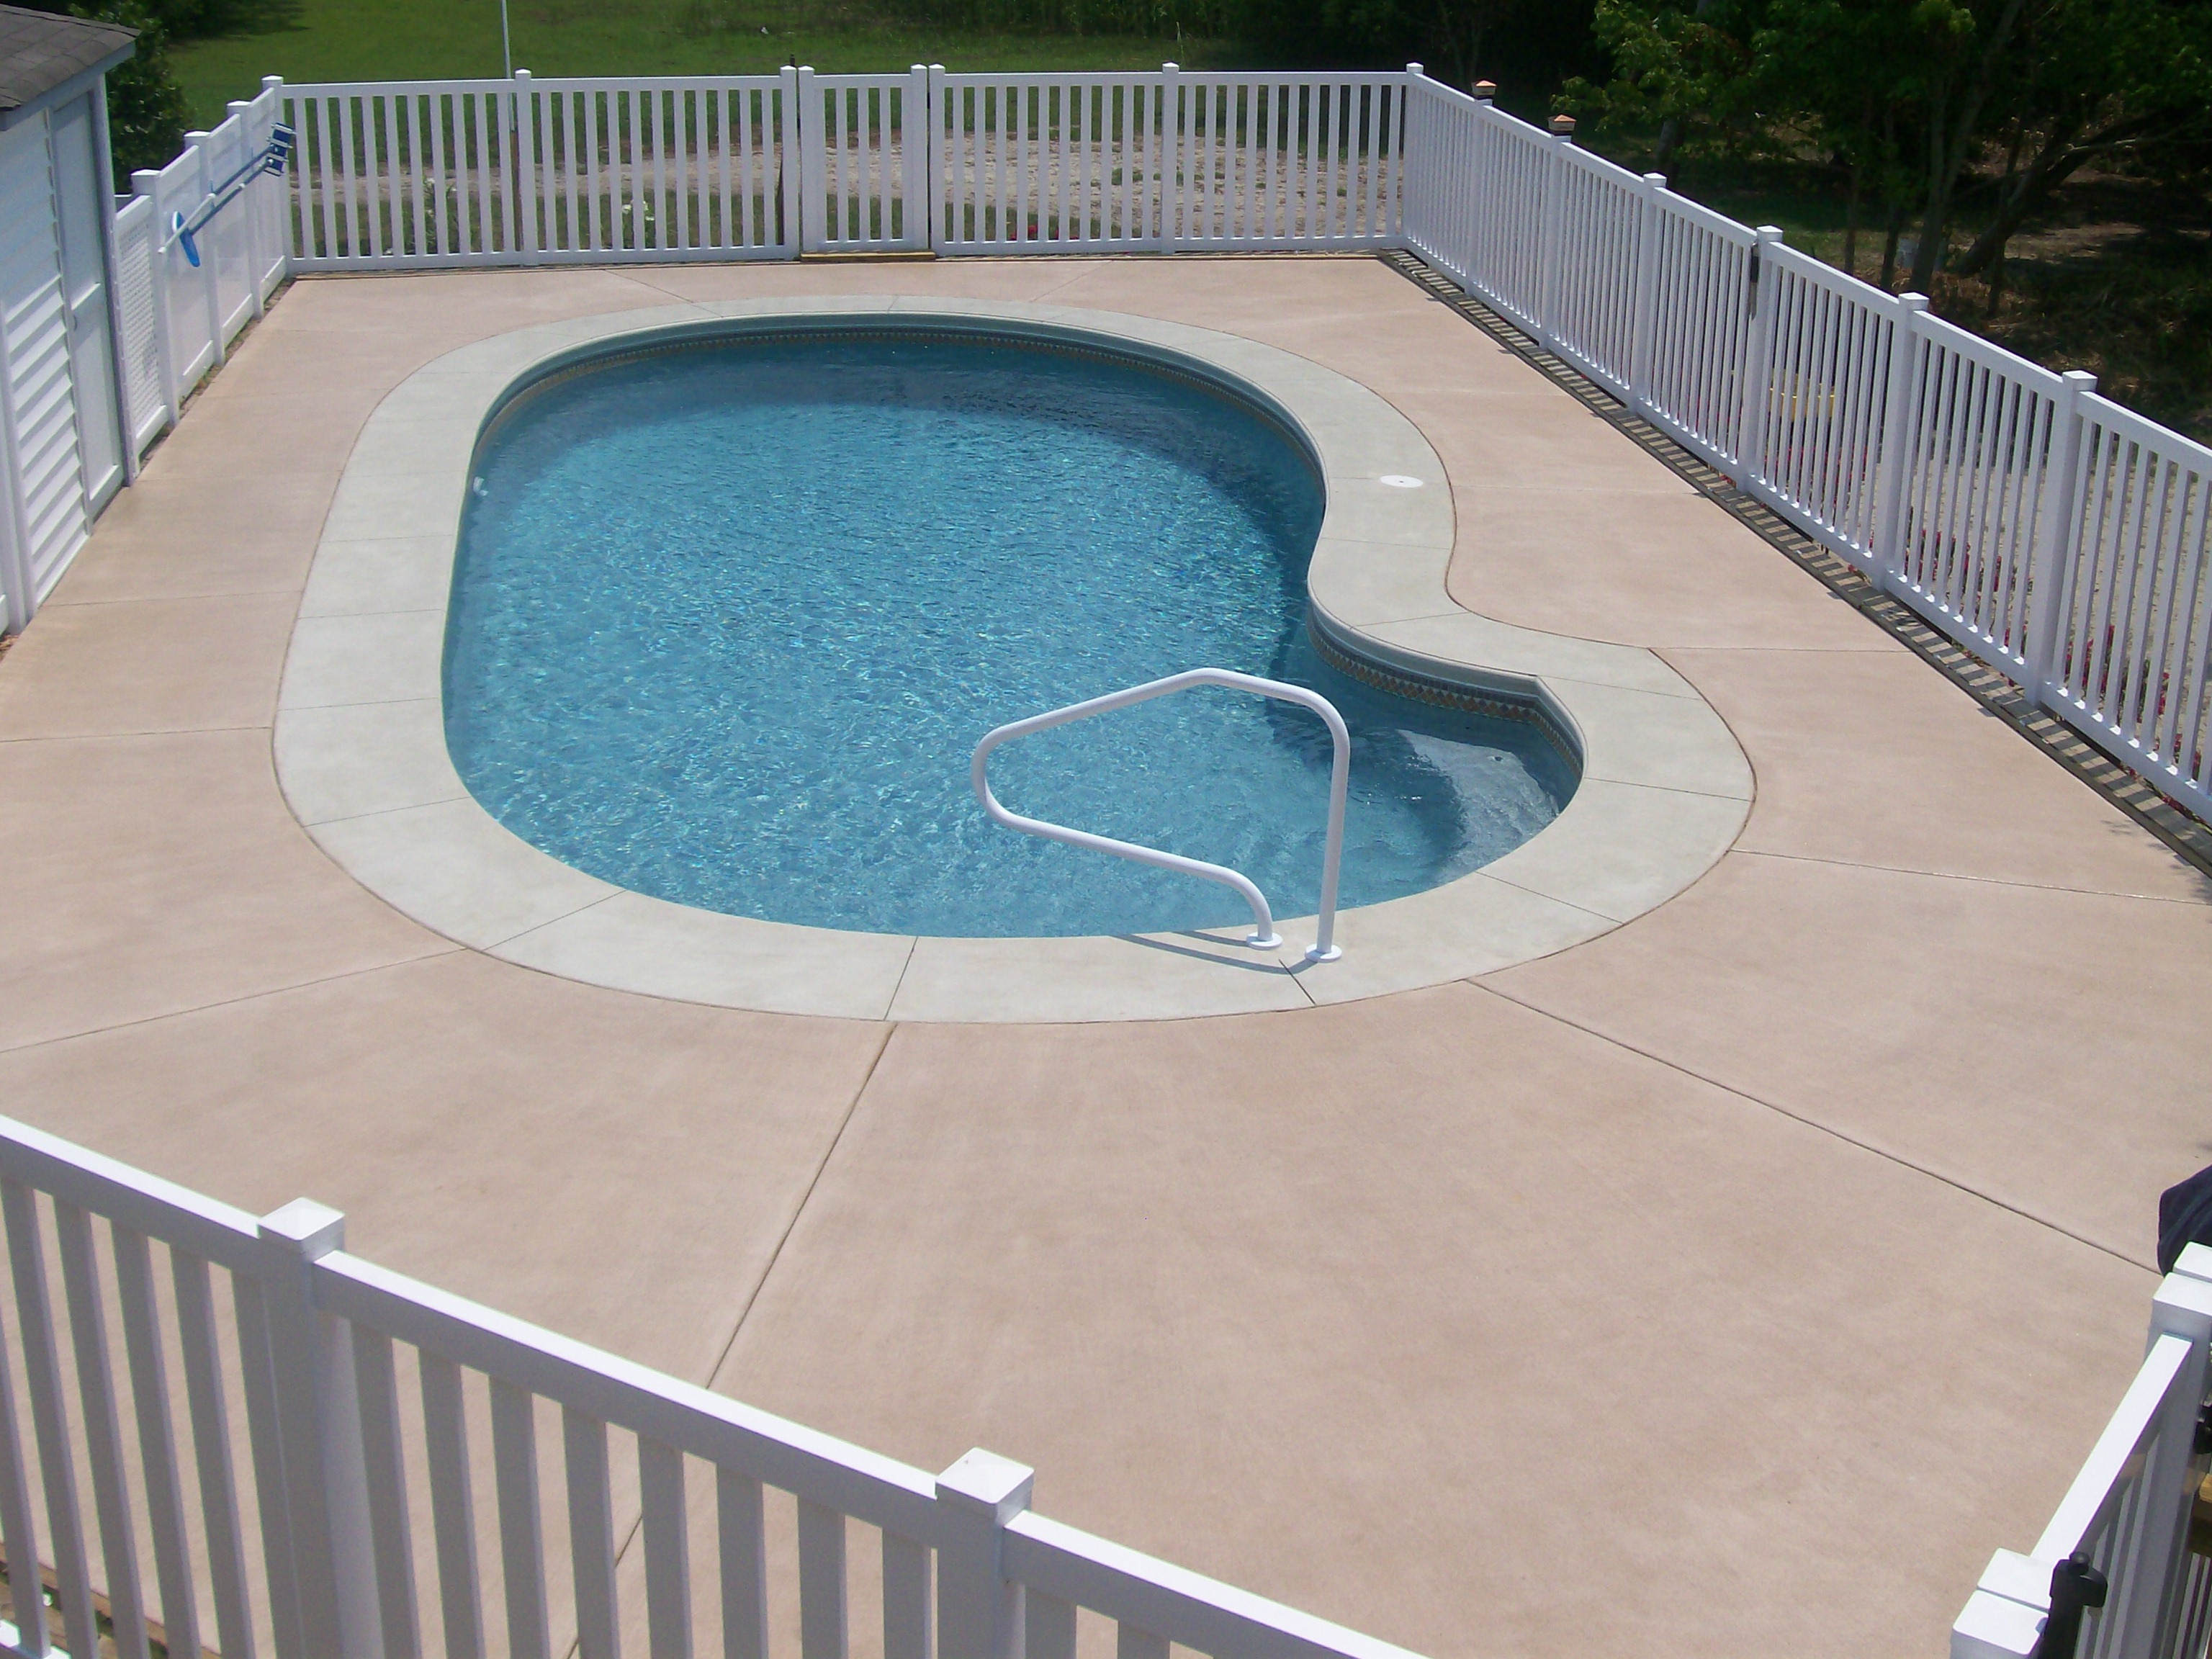 Border Around Pool Border Around Pool How To Landscape Around An Above Ground Pool